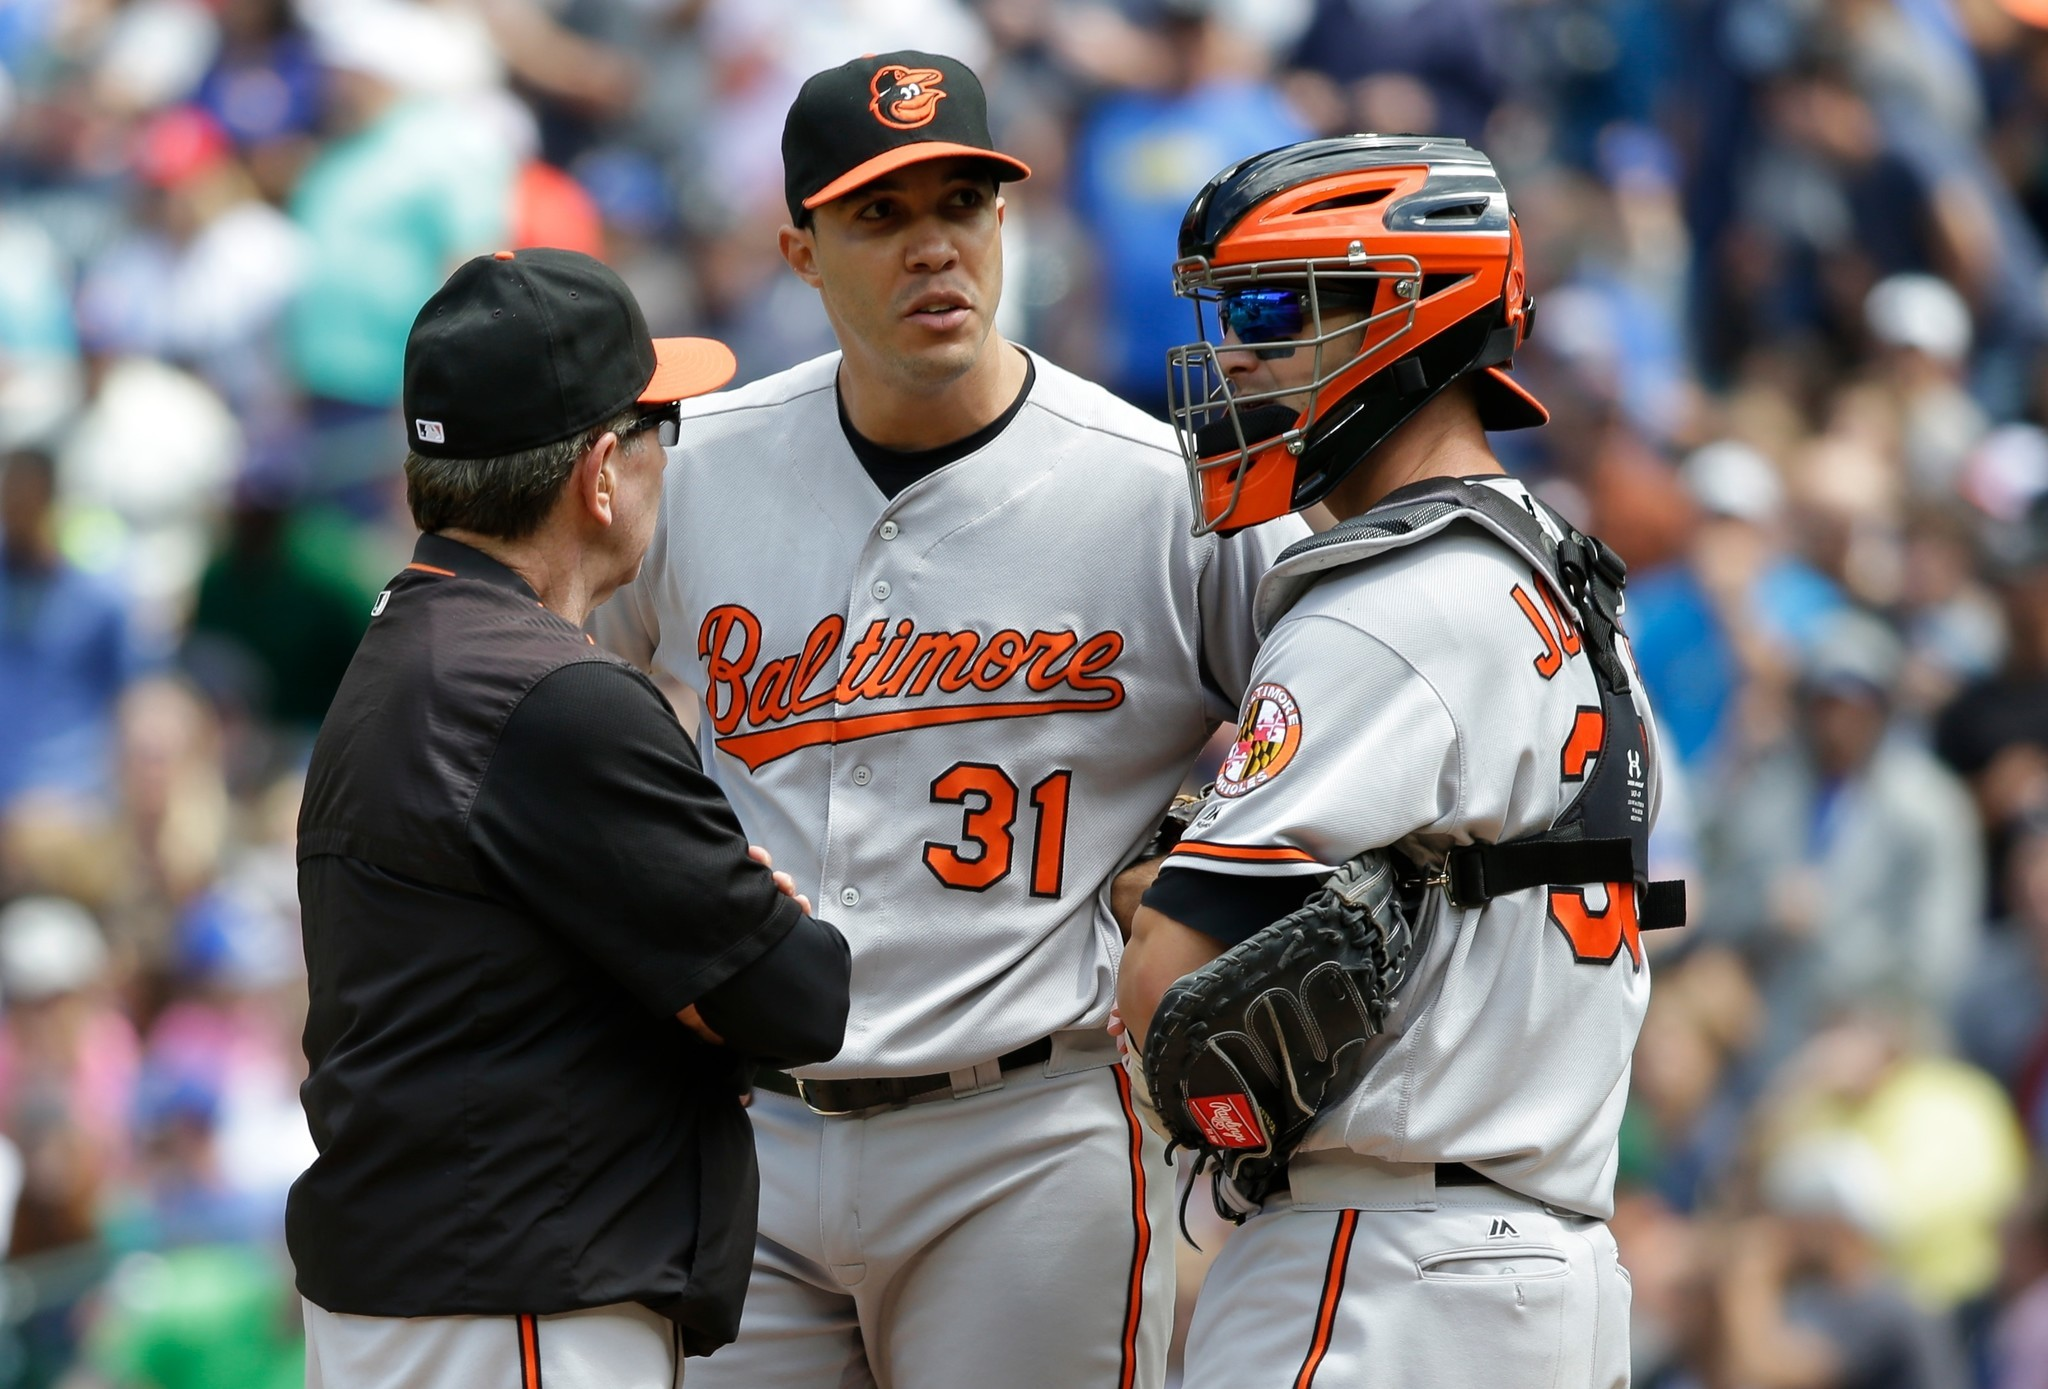 Bal-dave-wallace-says-orioles-pitching-staff-in-day-to-day-mode-without-top-starter-chris-tillman-20160824